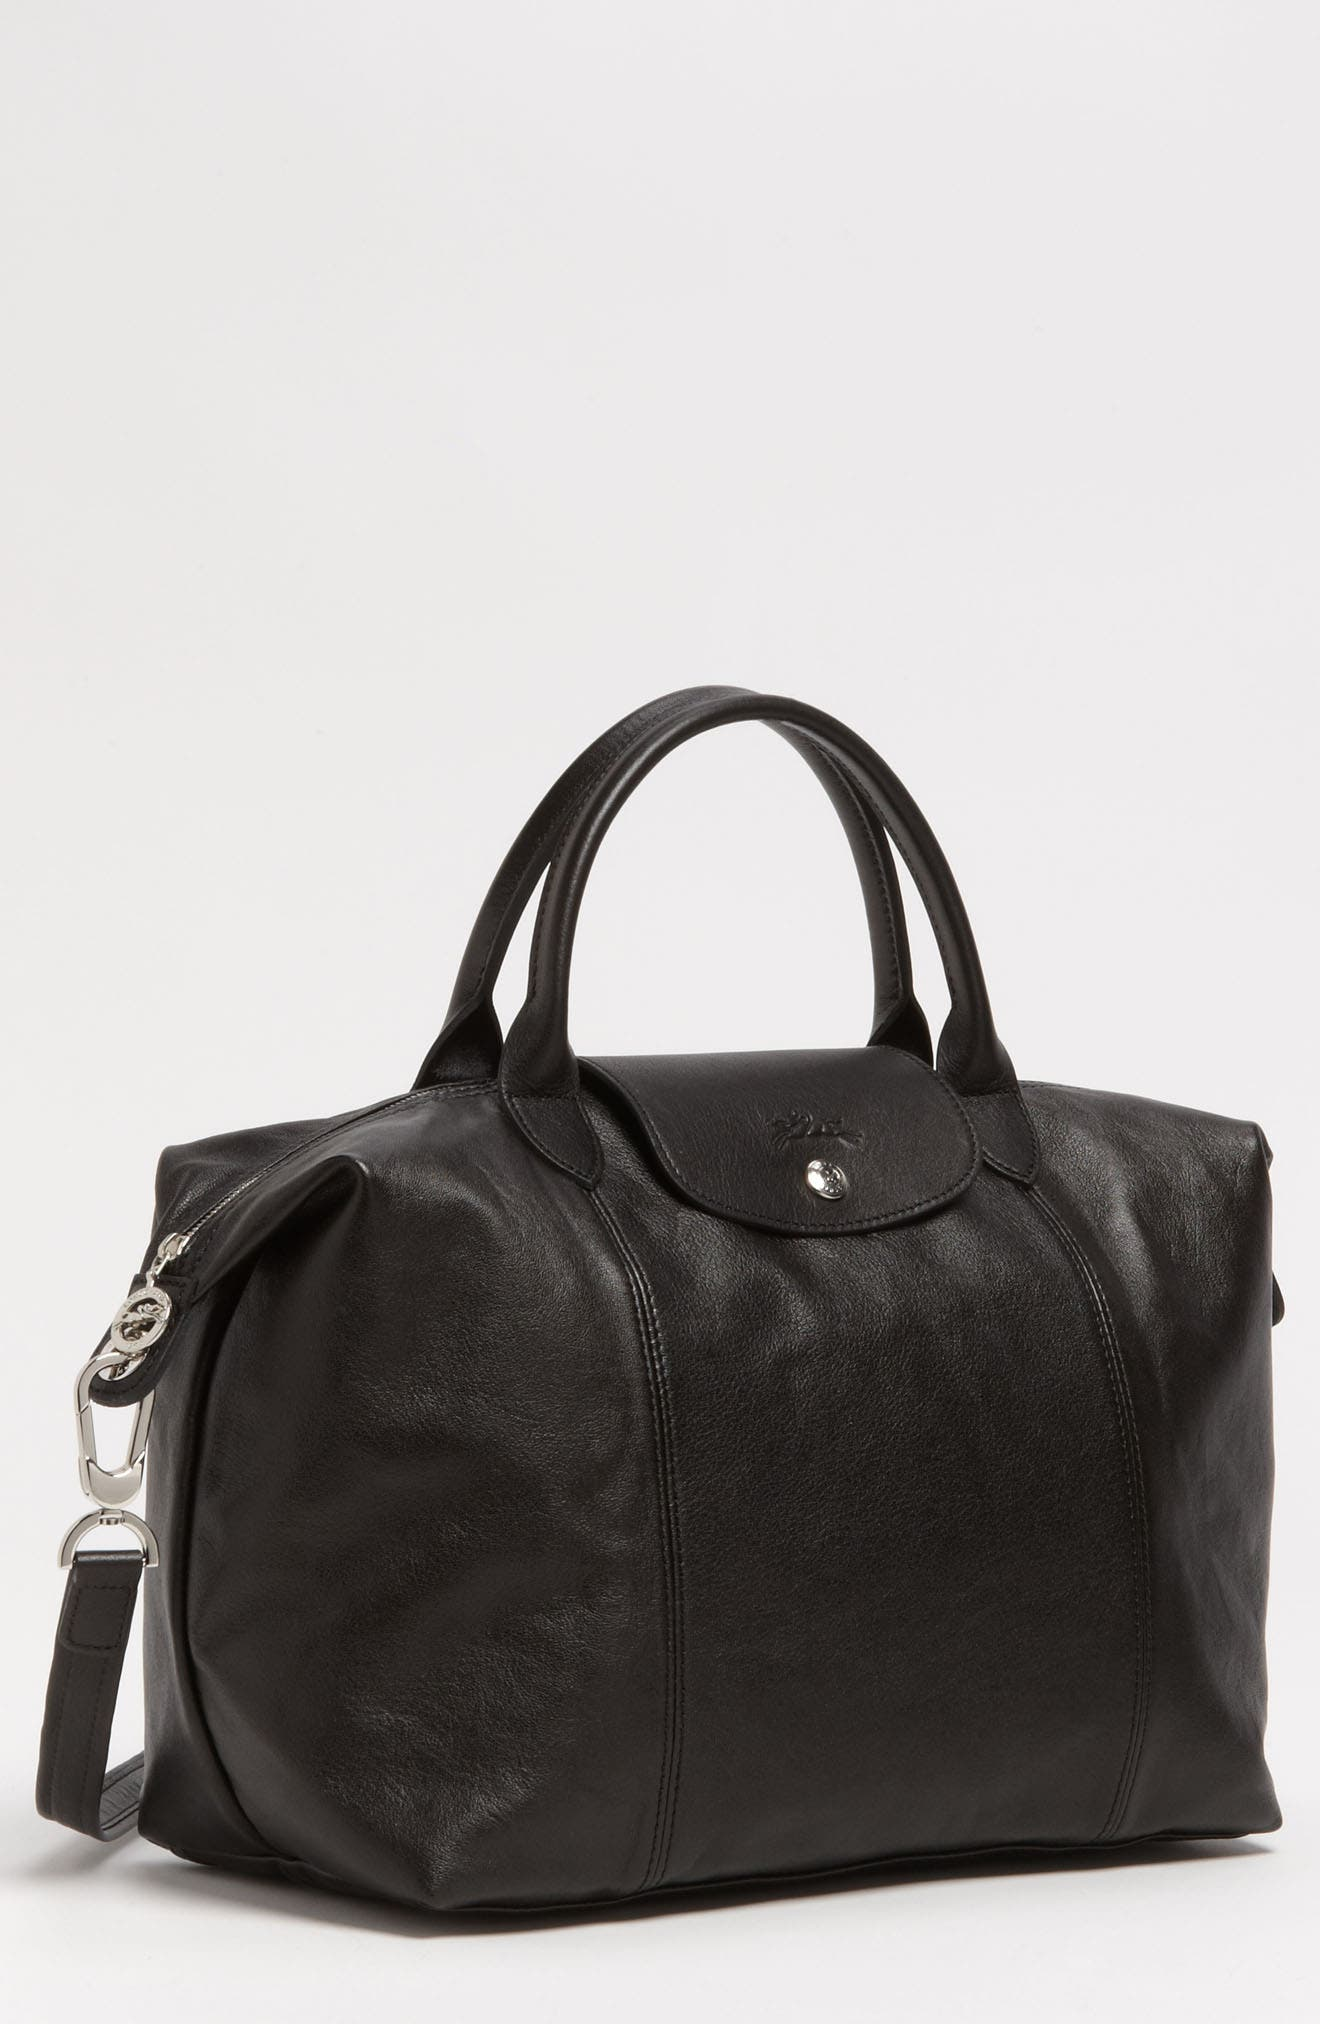 Medium 'Le Pliage Cuir' Leather Top Handle Tote,                             Alternate thumbnail 39, color,